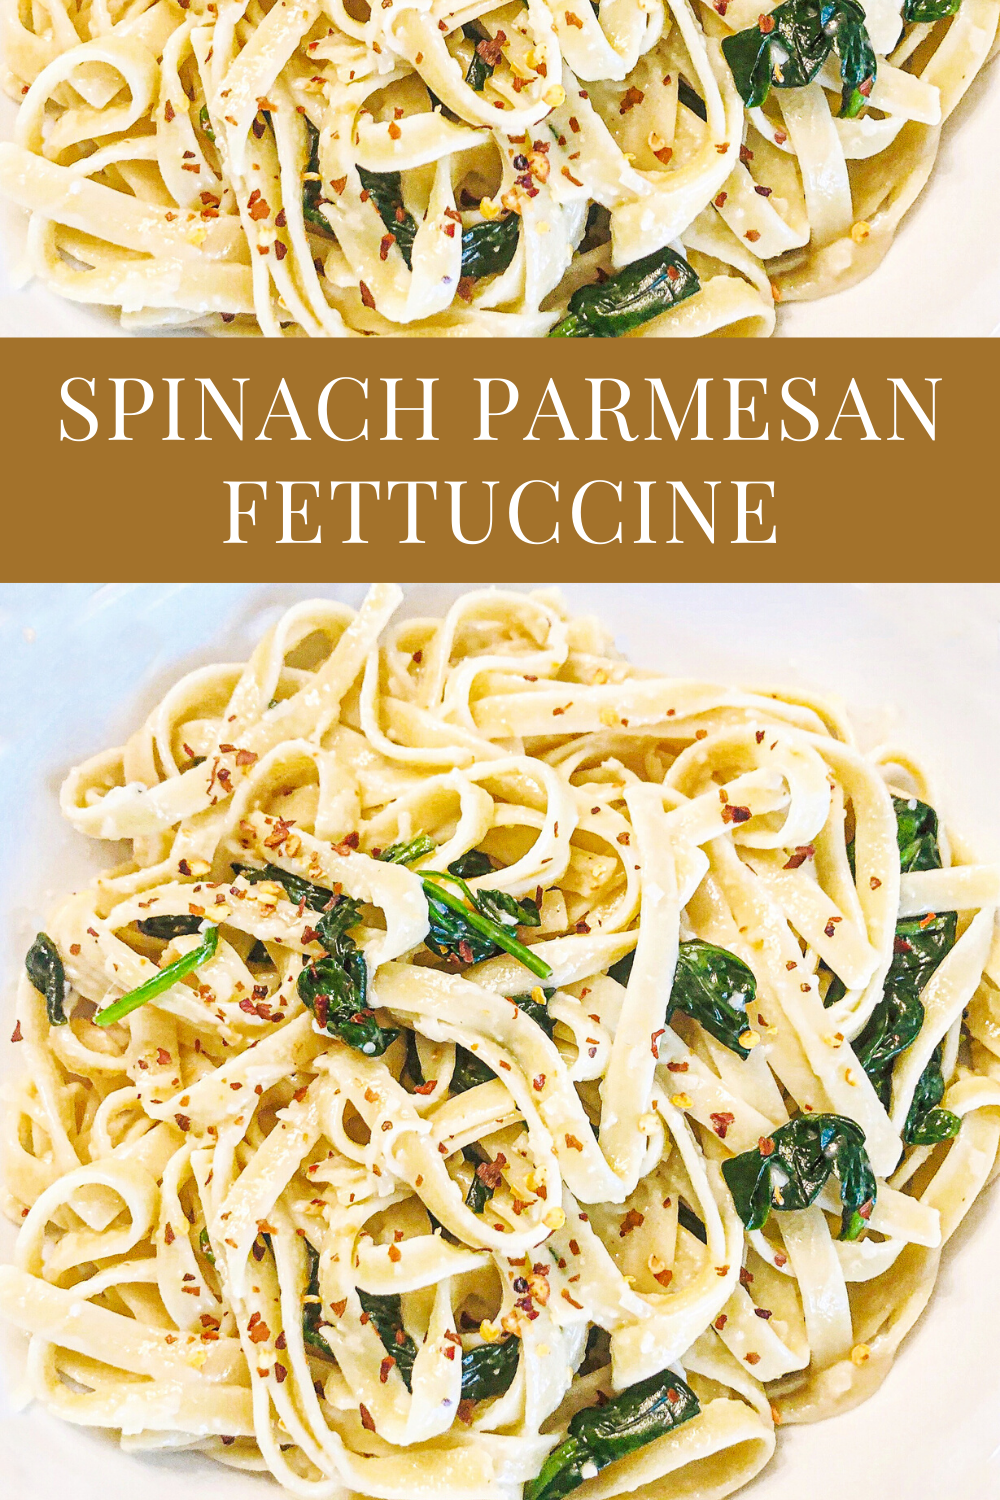 Vegan Spinach Parmesan Fettuccine - Just 5 ingredients! Vegan spinach parmesan fettuccine is a favorite go-to meal when we're short on time or crave the simplicity of an easy, no-fuss dinner. | thiswifecooks.com